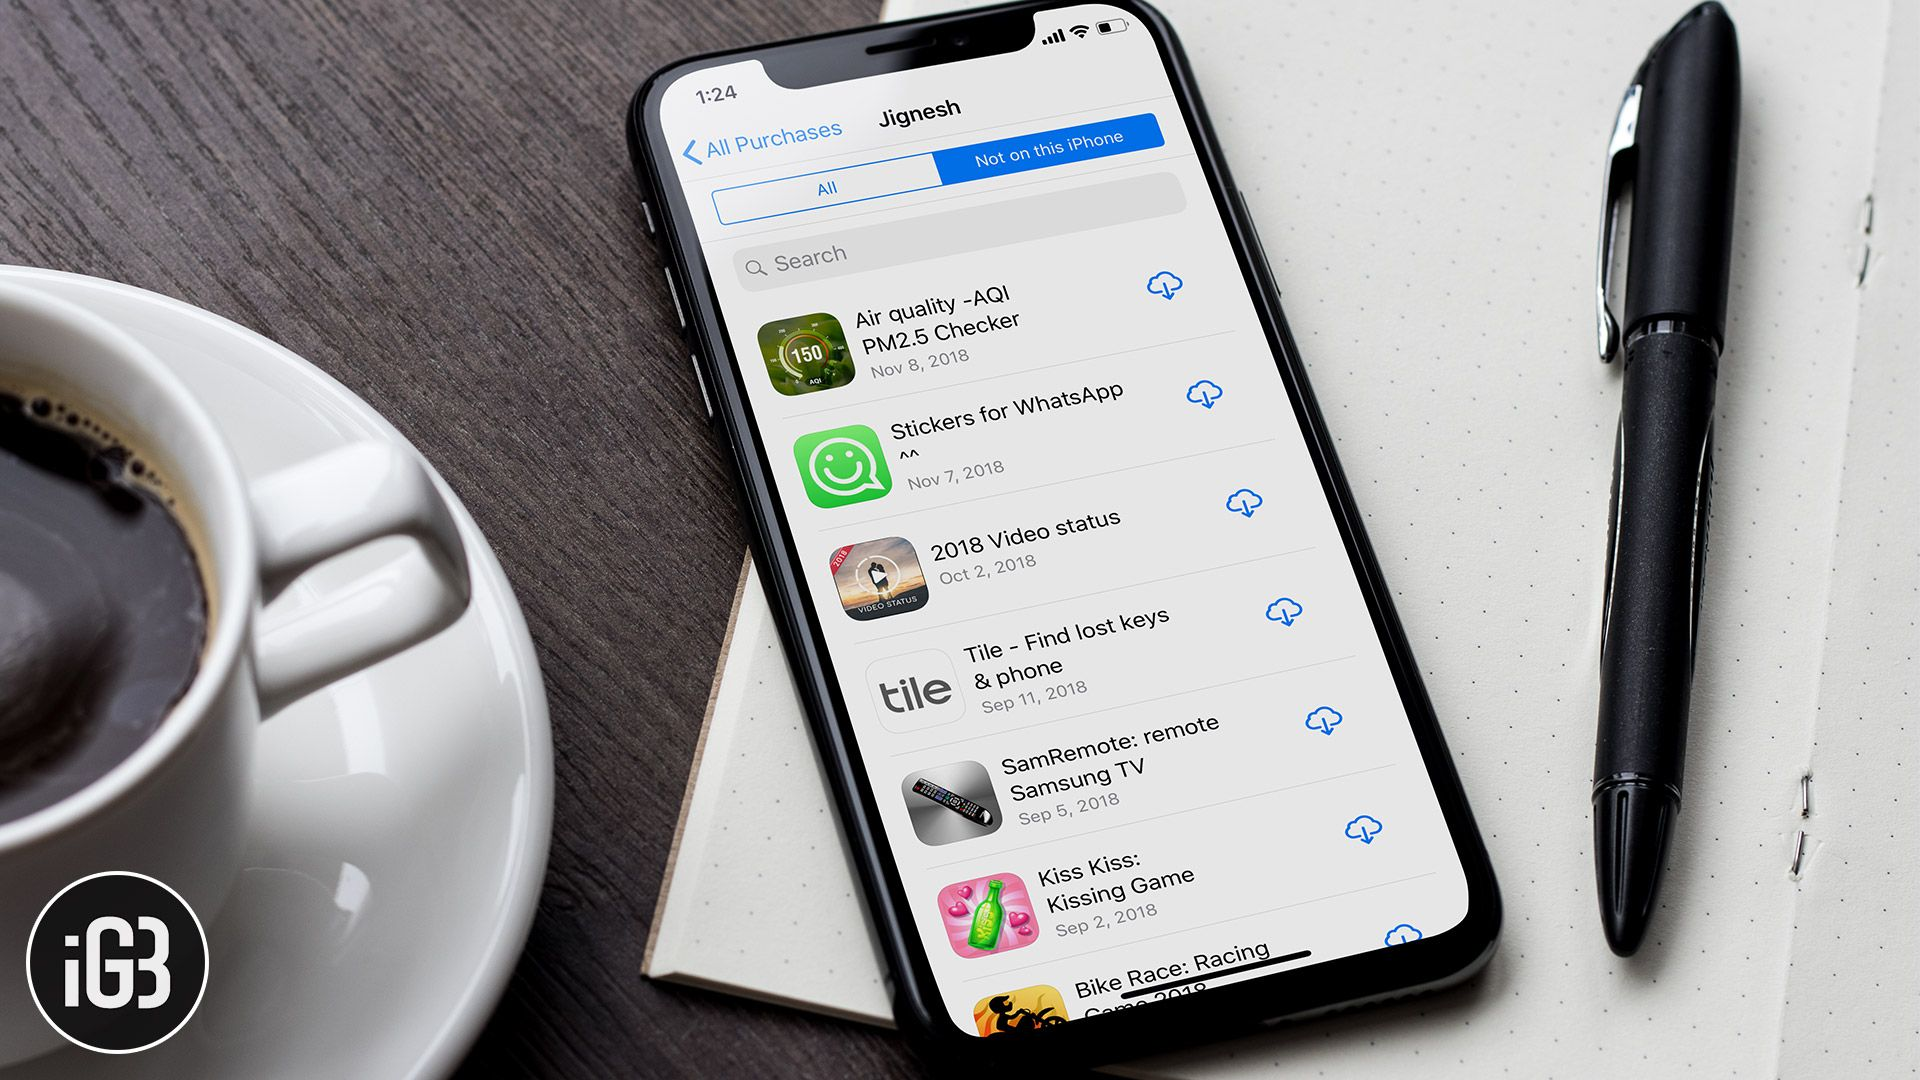 How to Restore Deleted Apps on iPhone or iPad from App